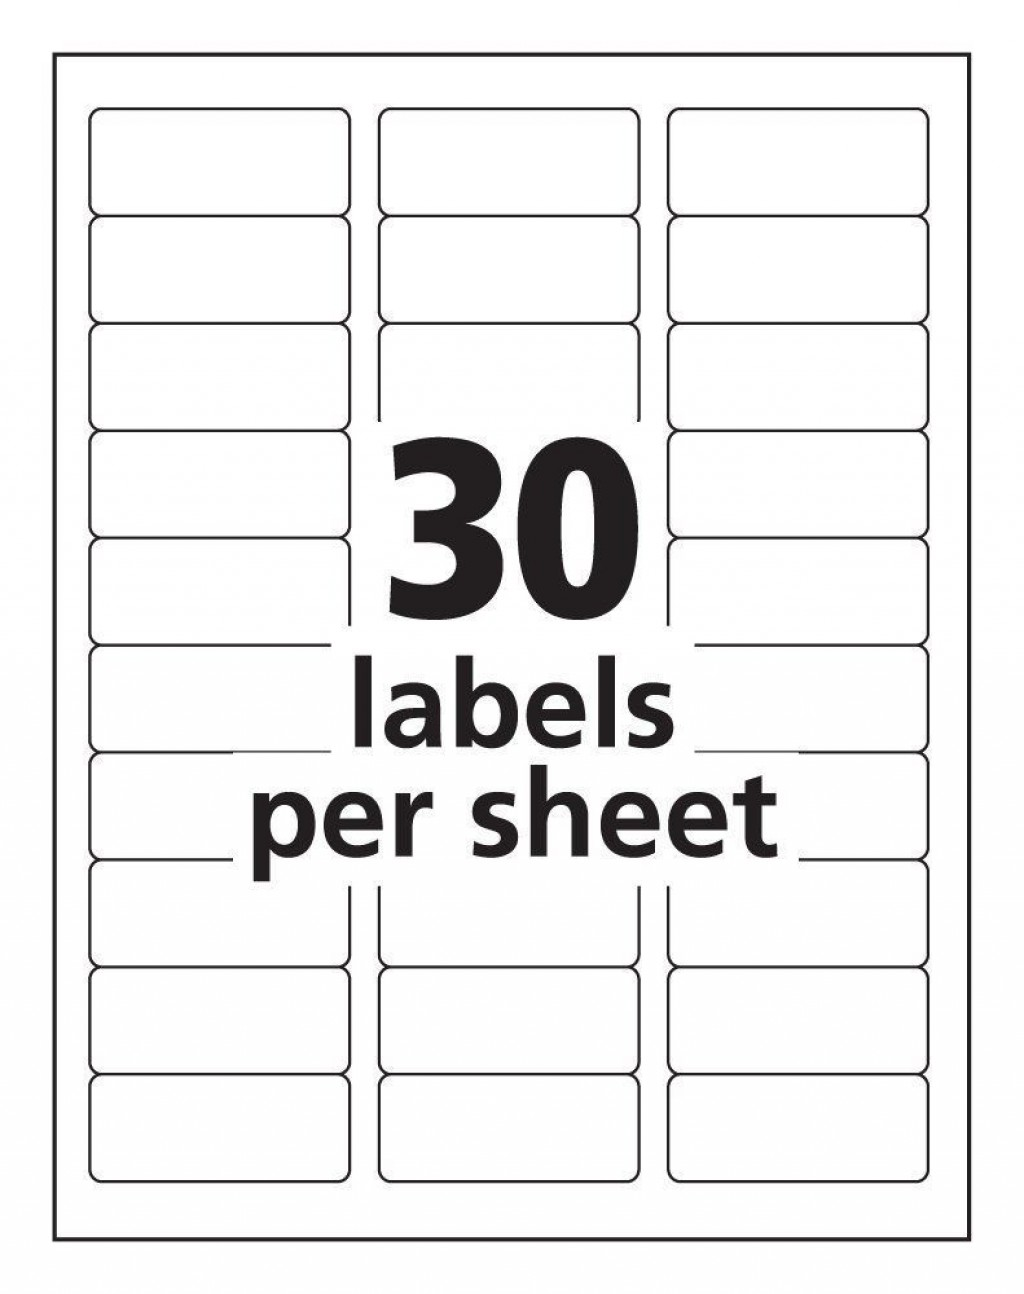 005 Amazing Microsoft Word Label Template Free High Def  Cd Dvd Water BottleLarge